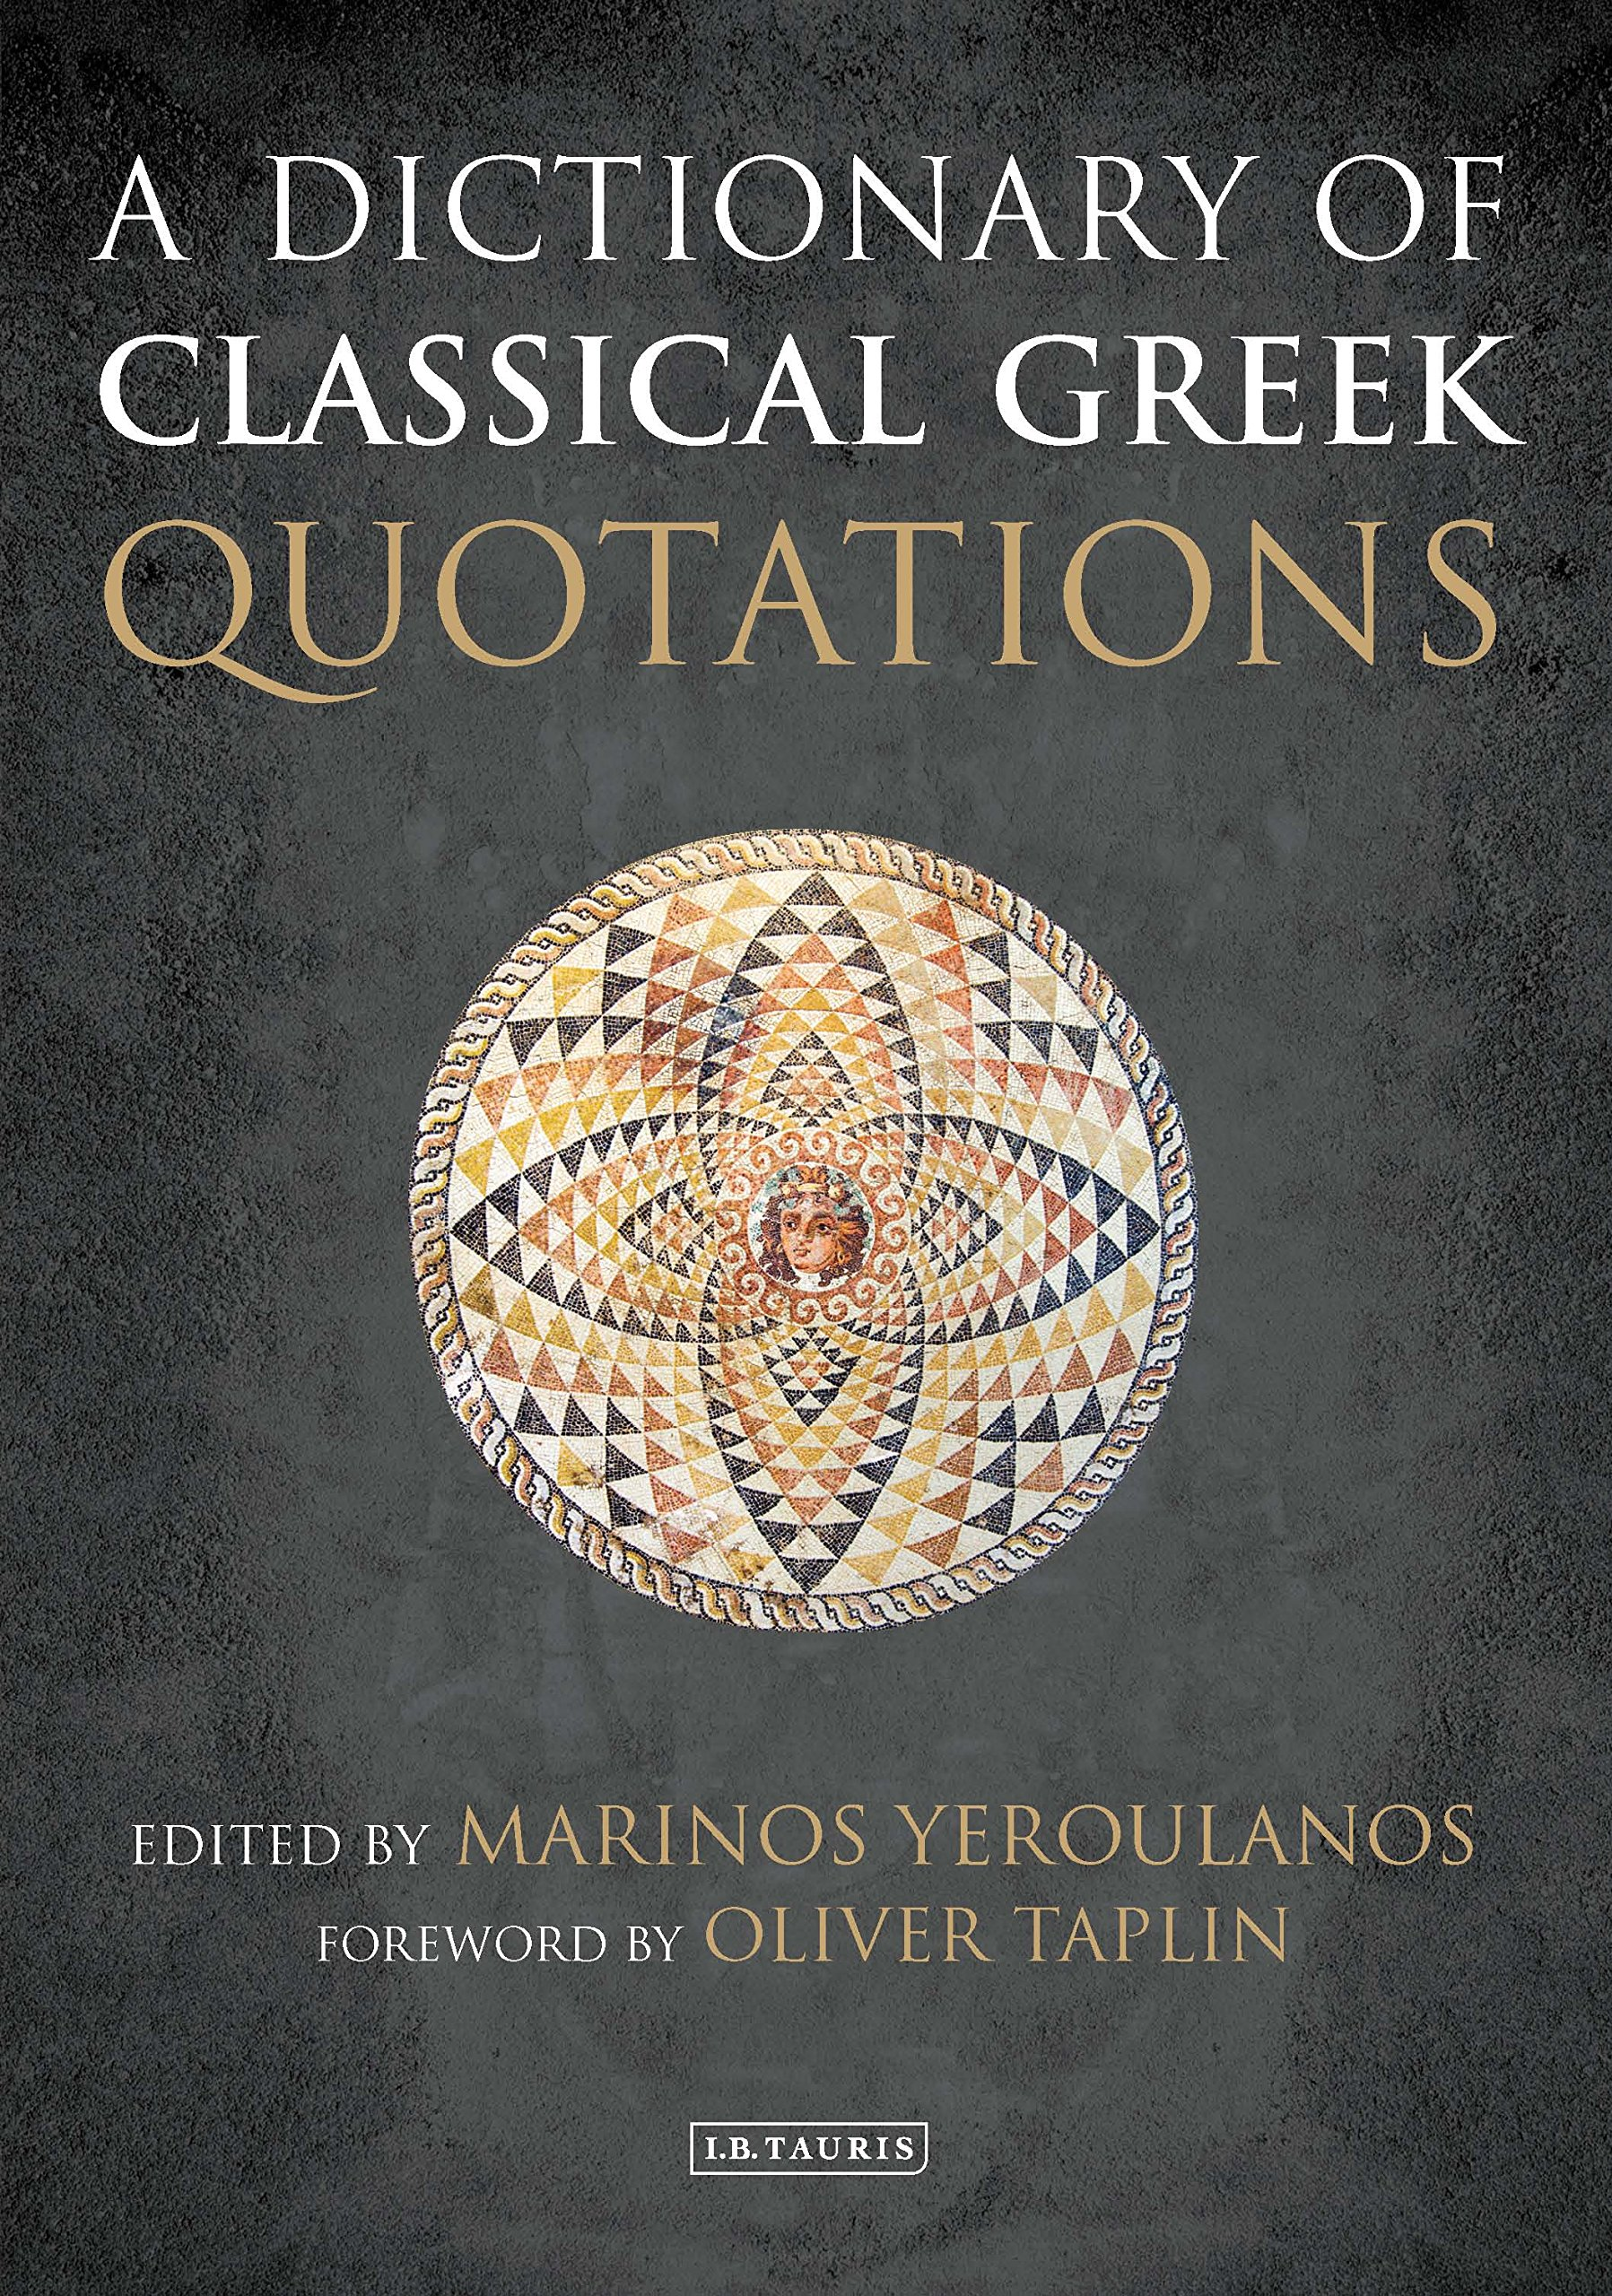 A Dictionary of Classical Greek Quotations by I.B. Tauris & Co Ltd